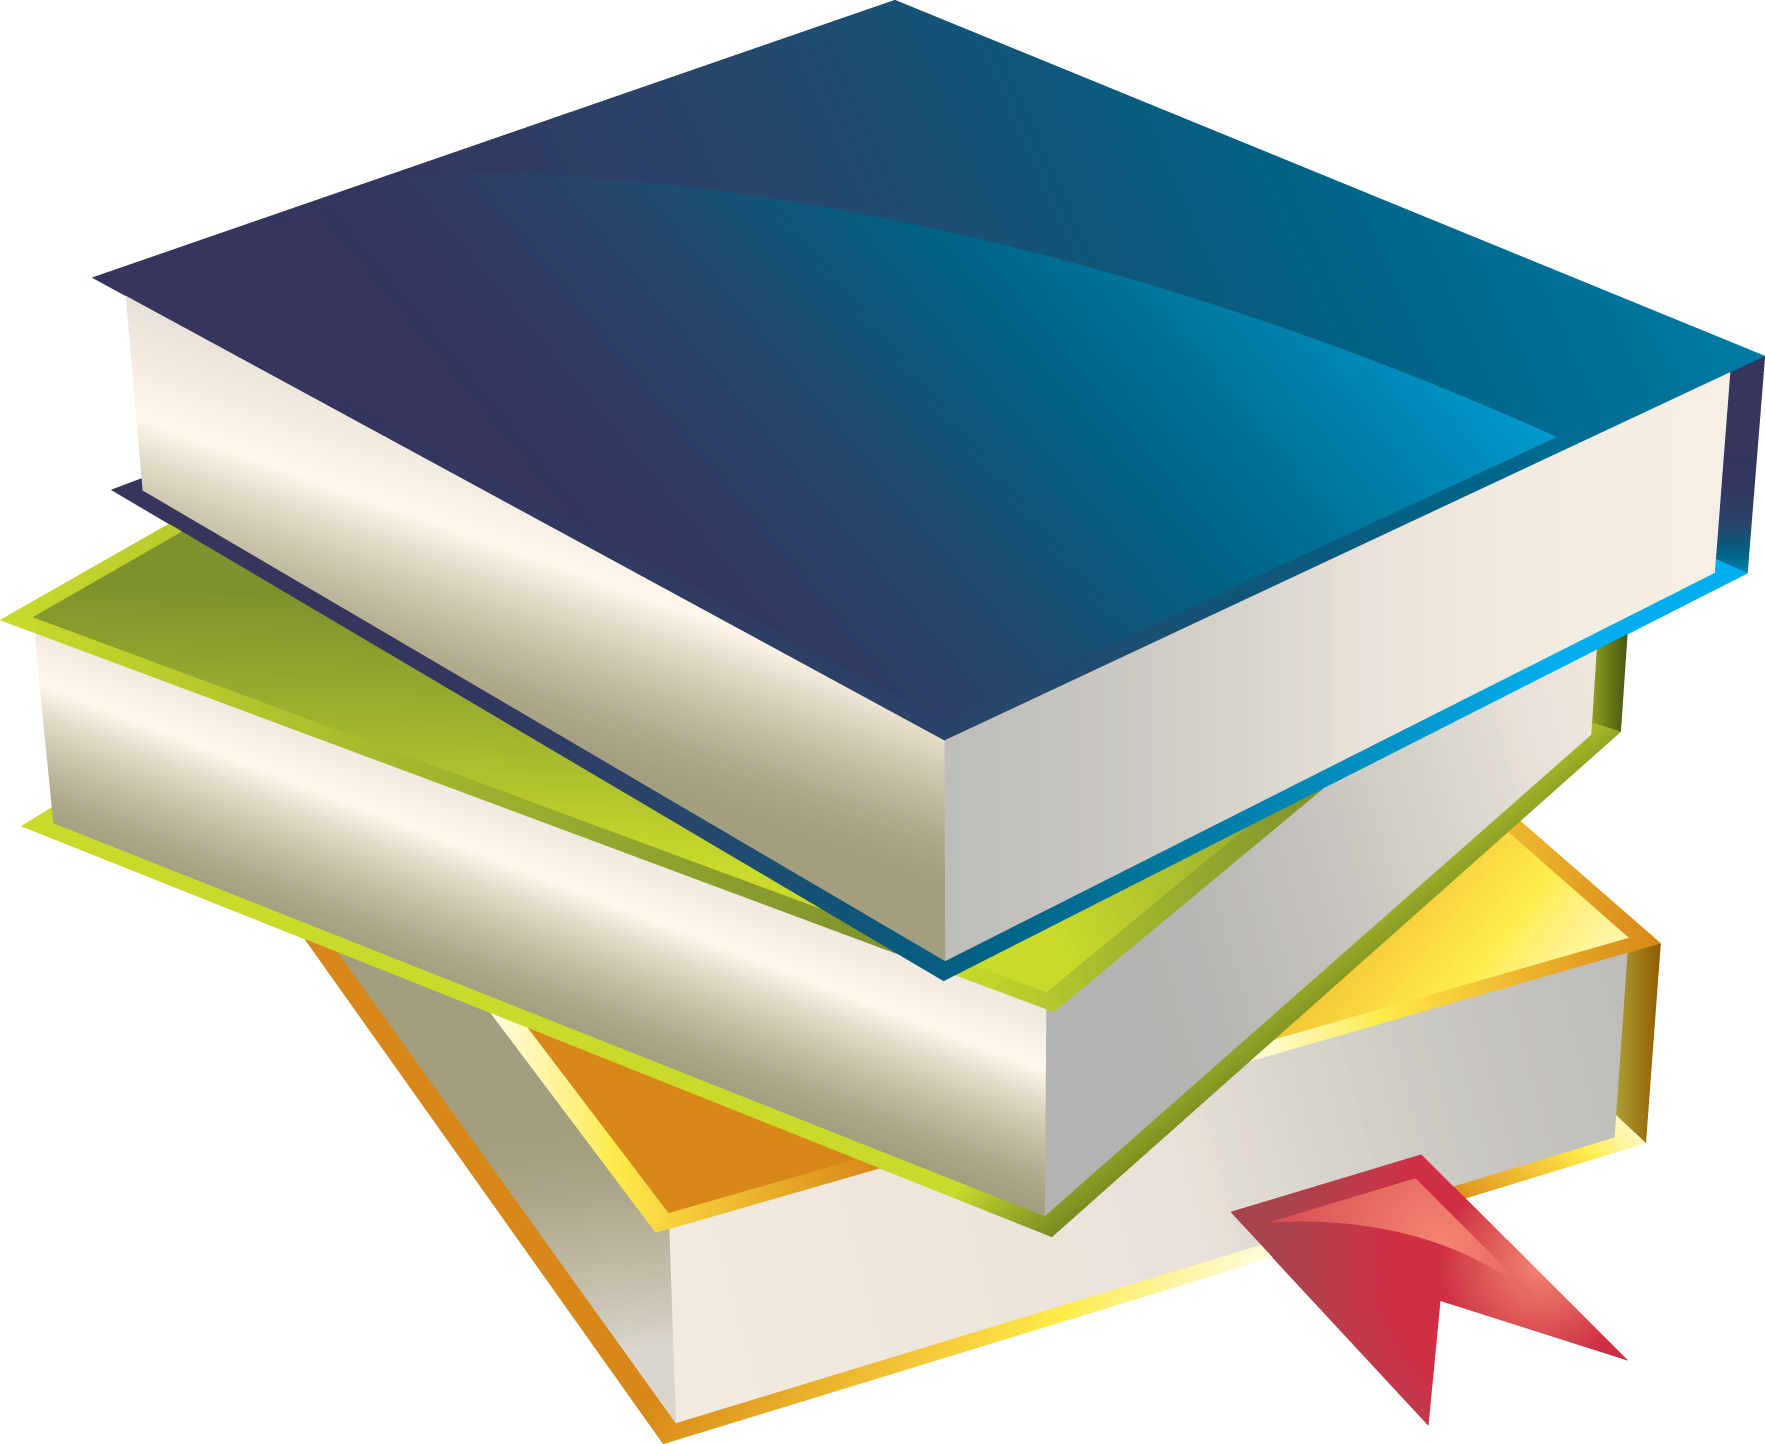 Textbook clipart transparent background. Book vector labs images